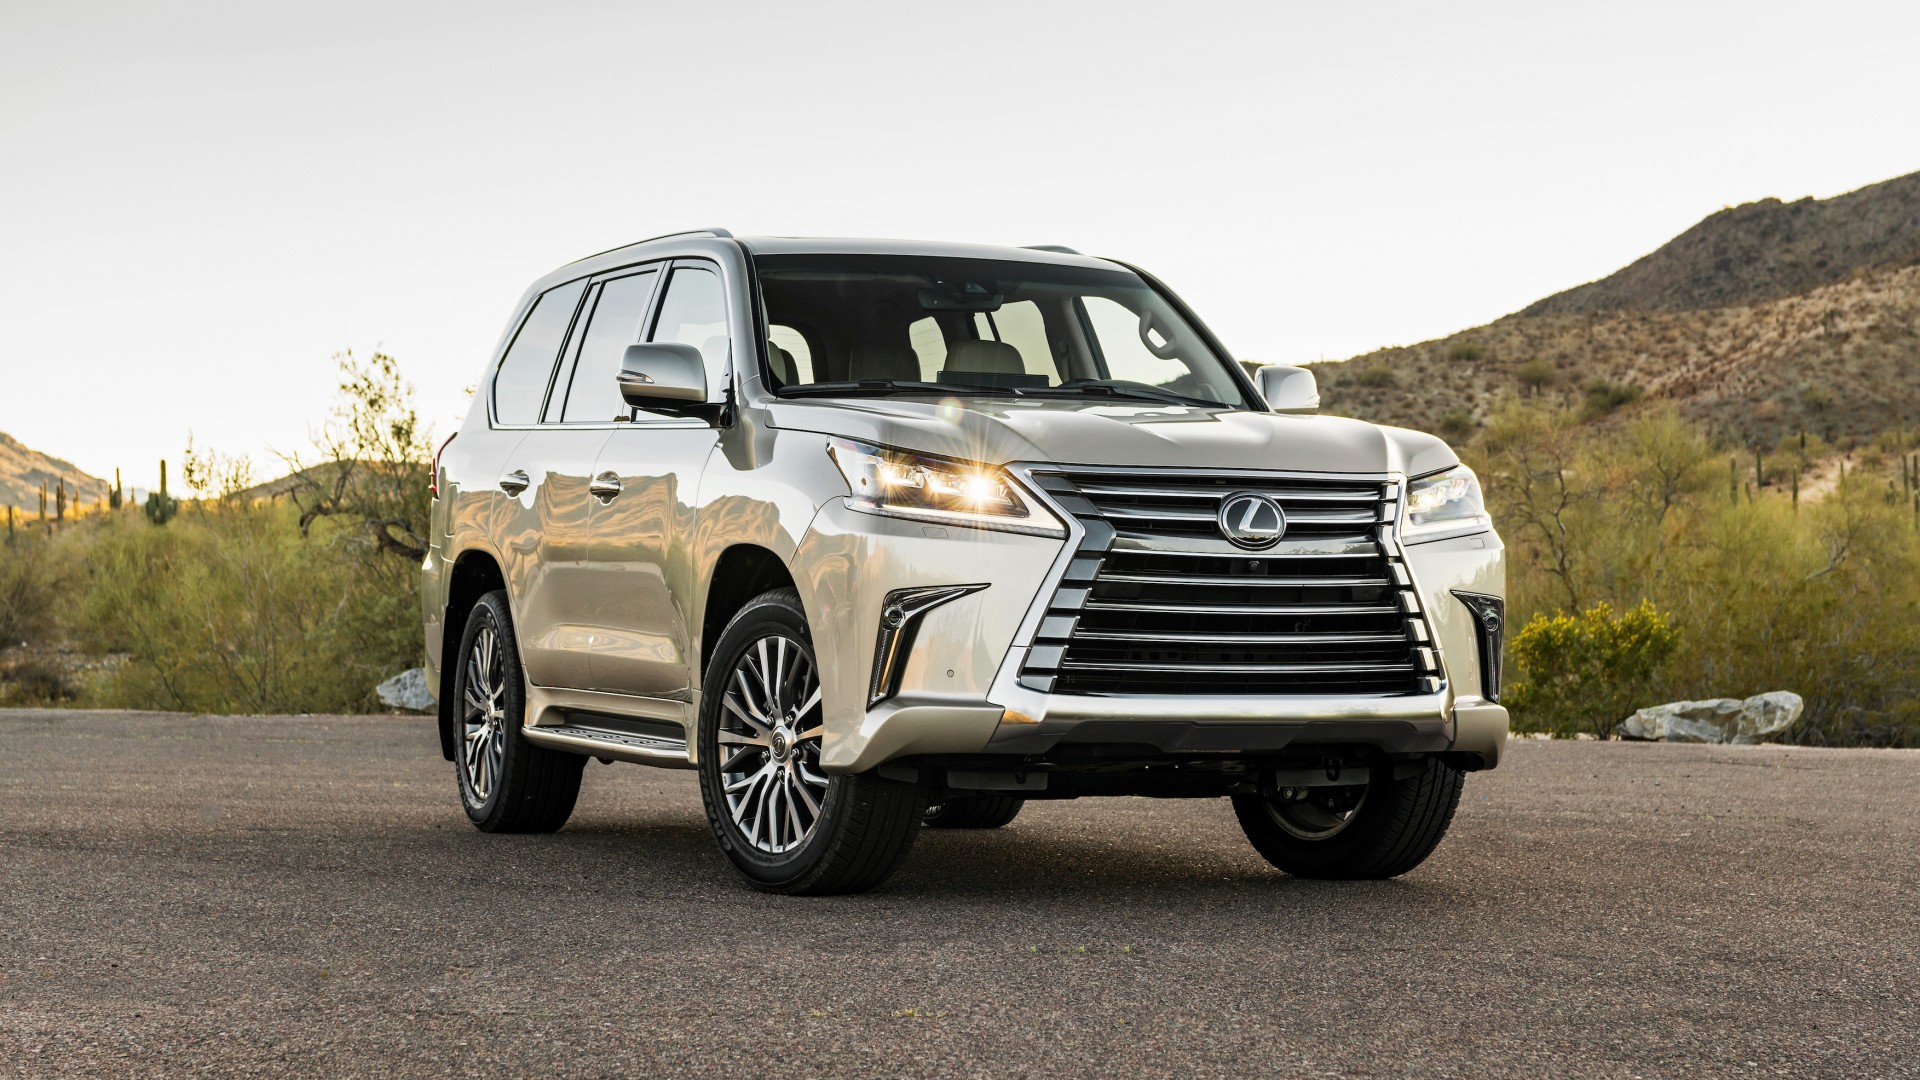 2018 Lexus Lx 570 Two Row Wallpaper Hd Car Wallpapers